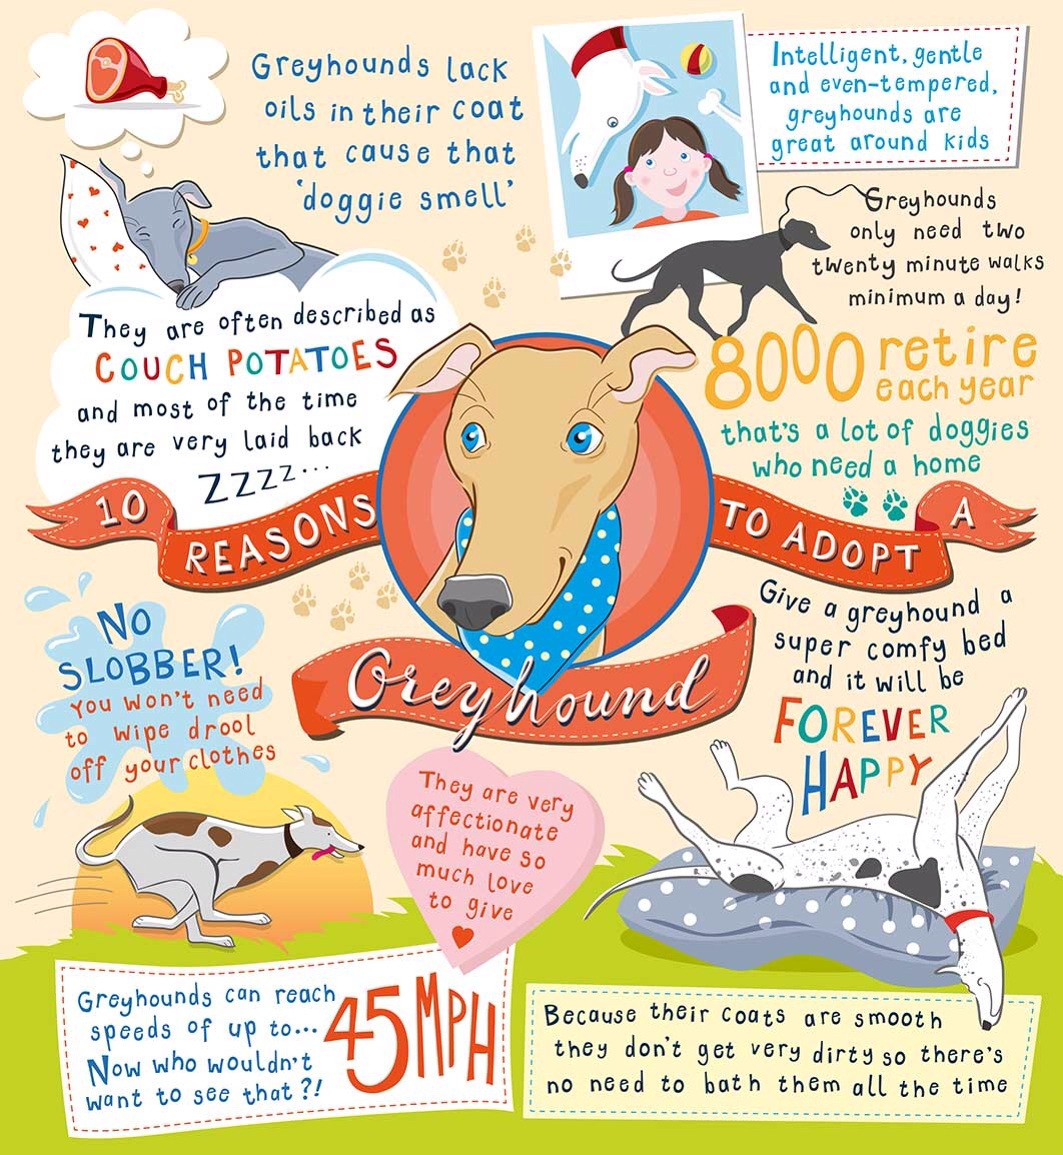 Why greyhounds?